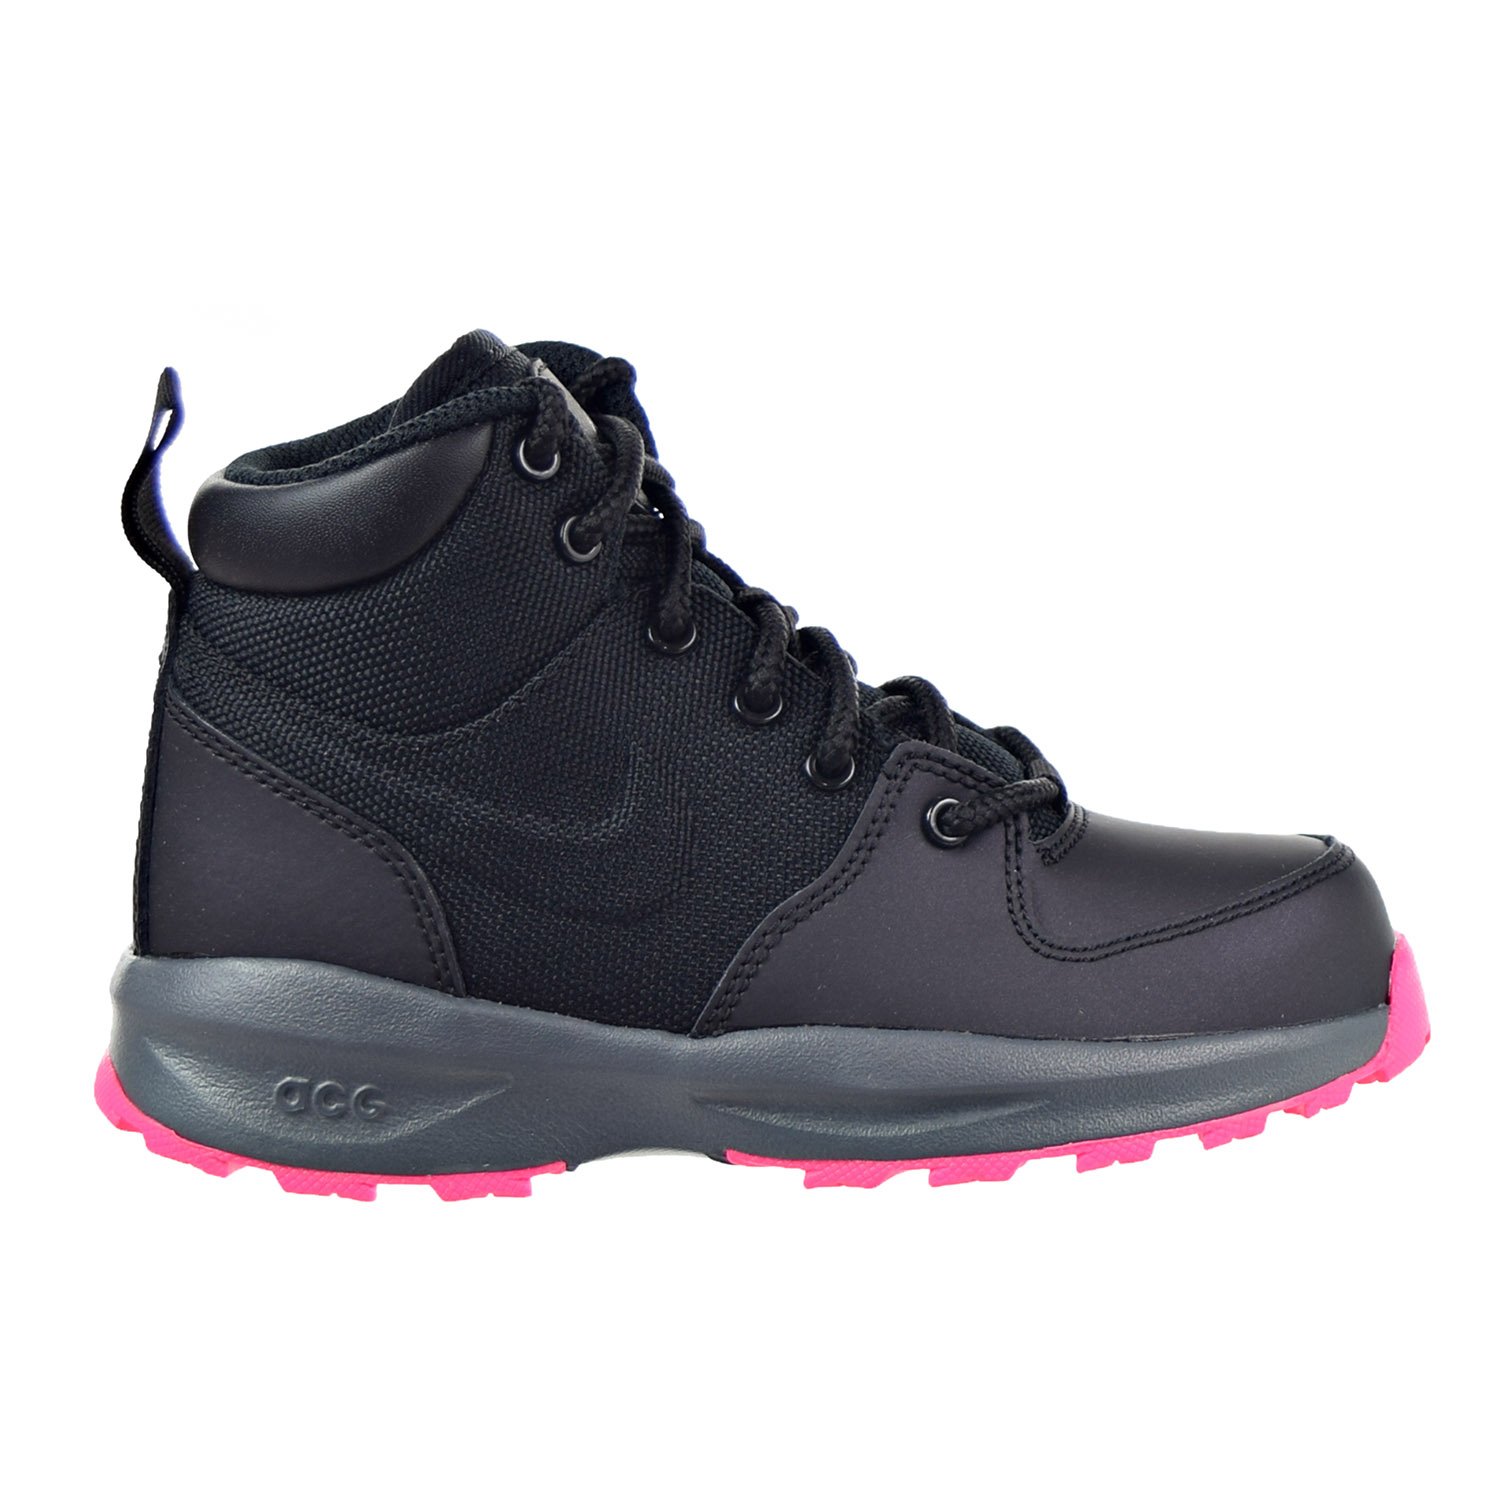 Nike Manoa Little Kids (PS) Boots Black/Hyper Pink 859413...